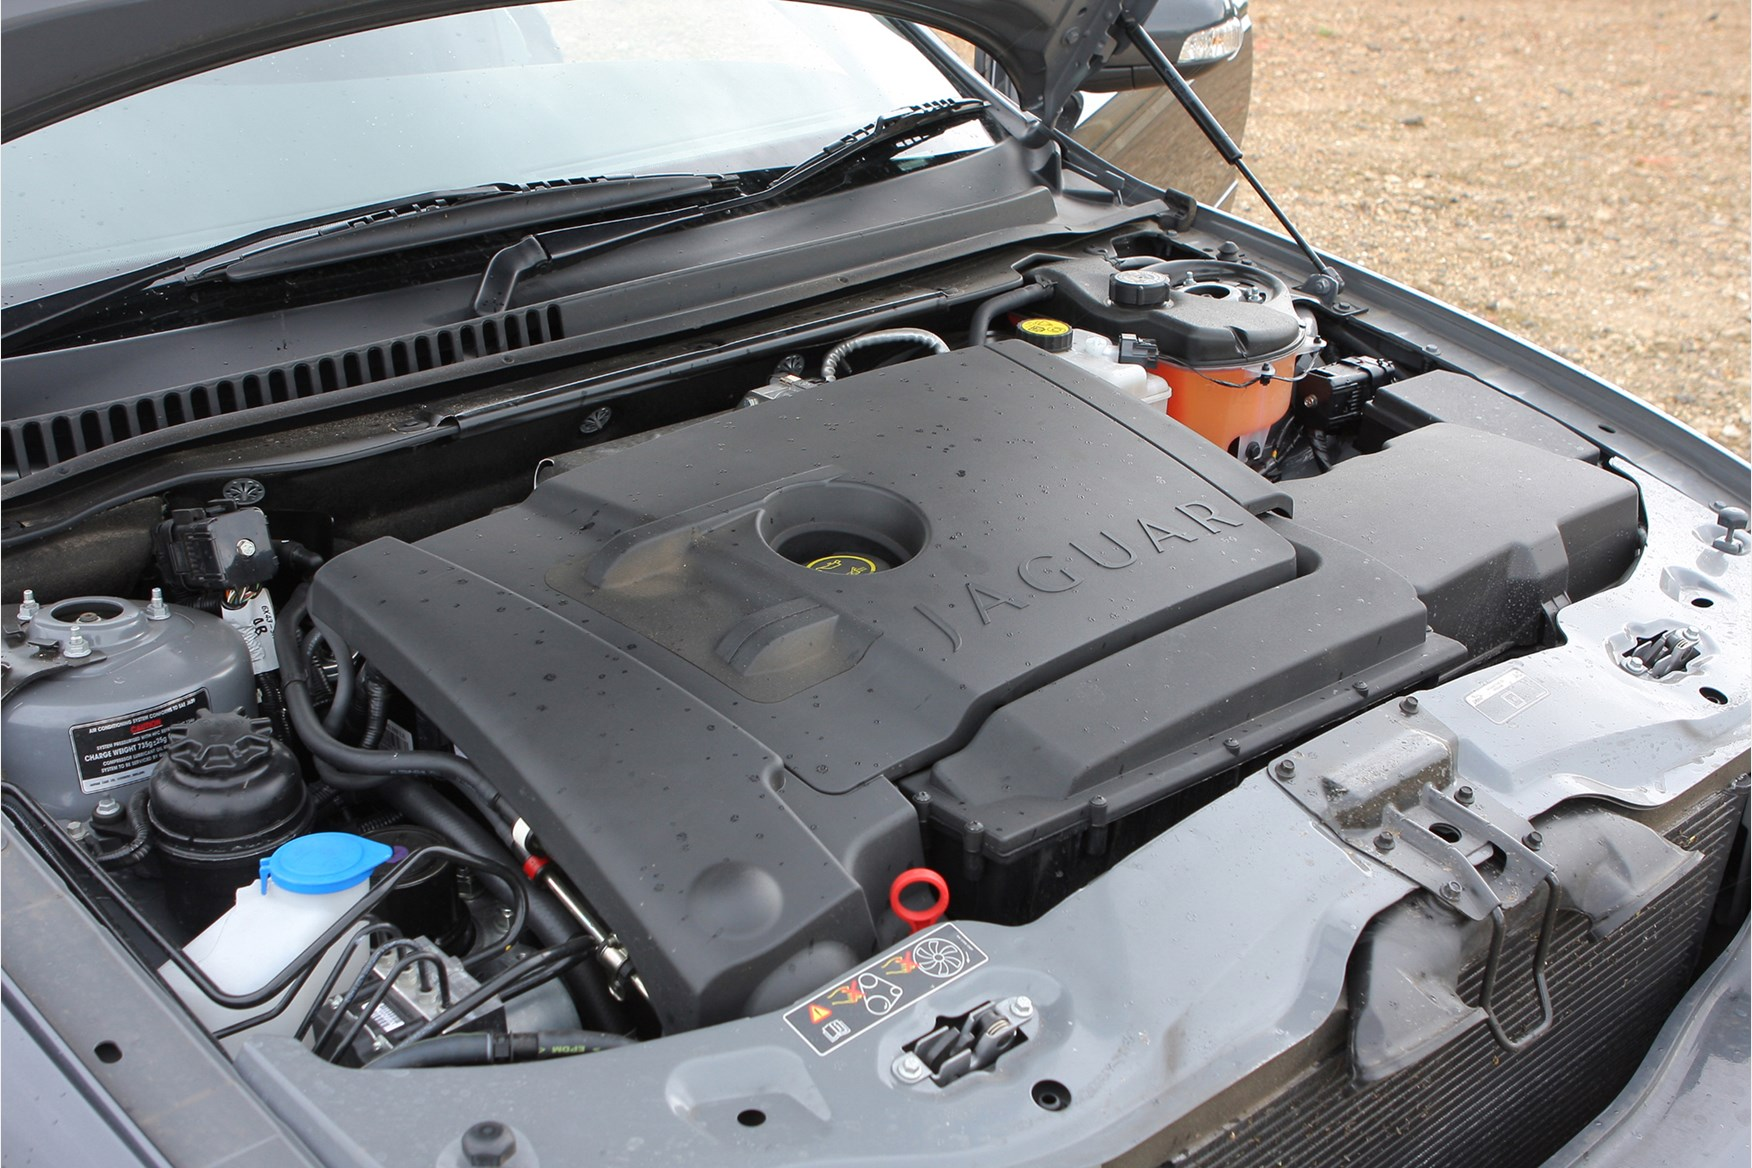 2007 jaguar xk8 battery location porsche boxster battery